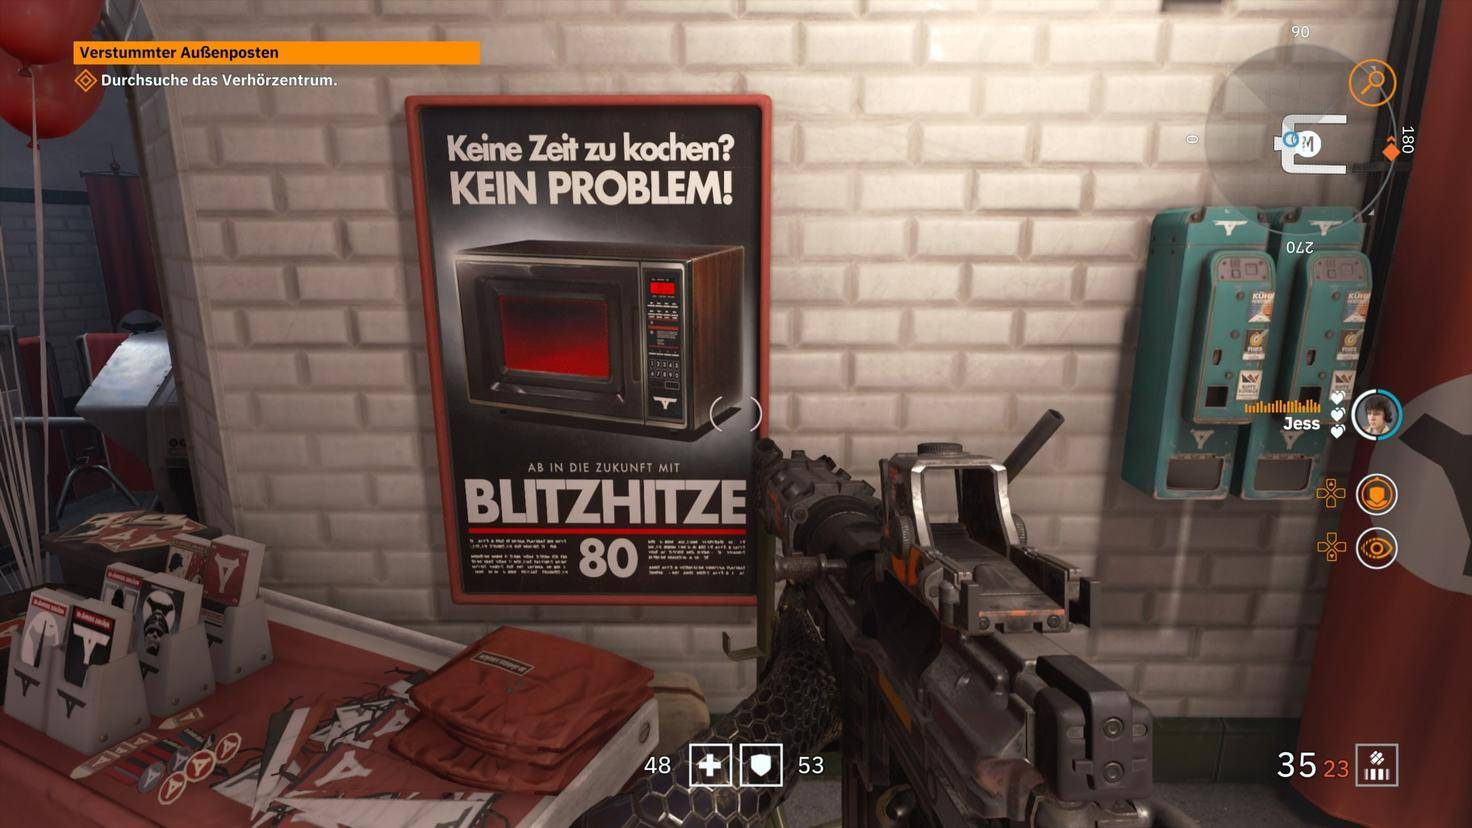 wolfenstein-youngblood-blitzhitze-gameplay-screenshot